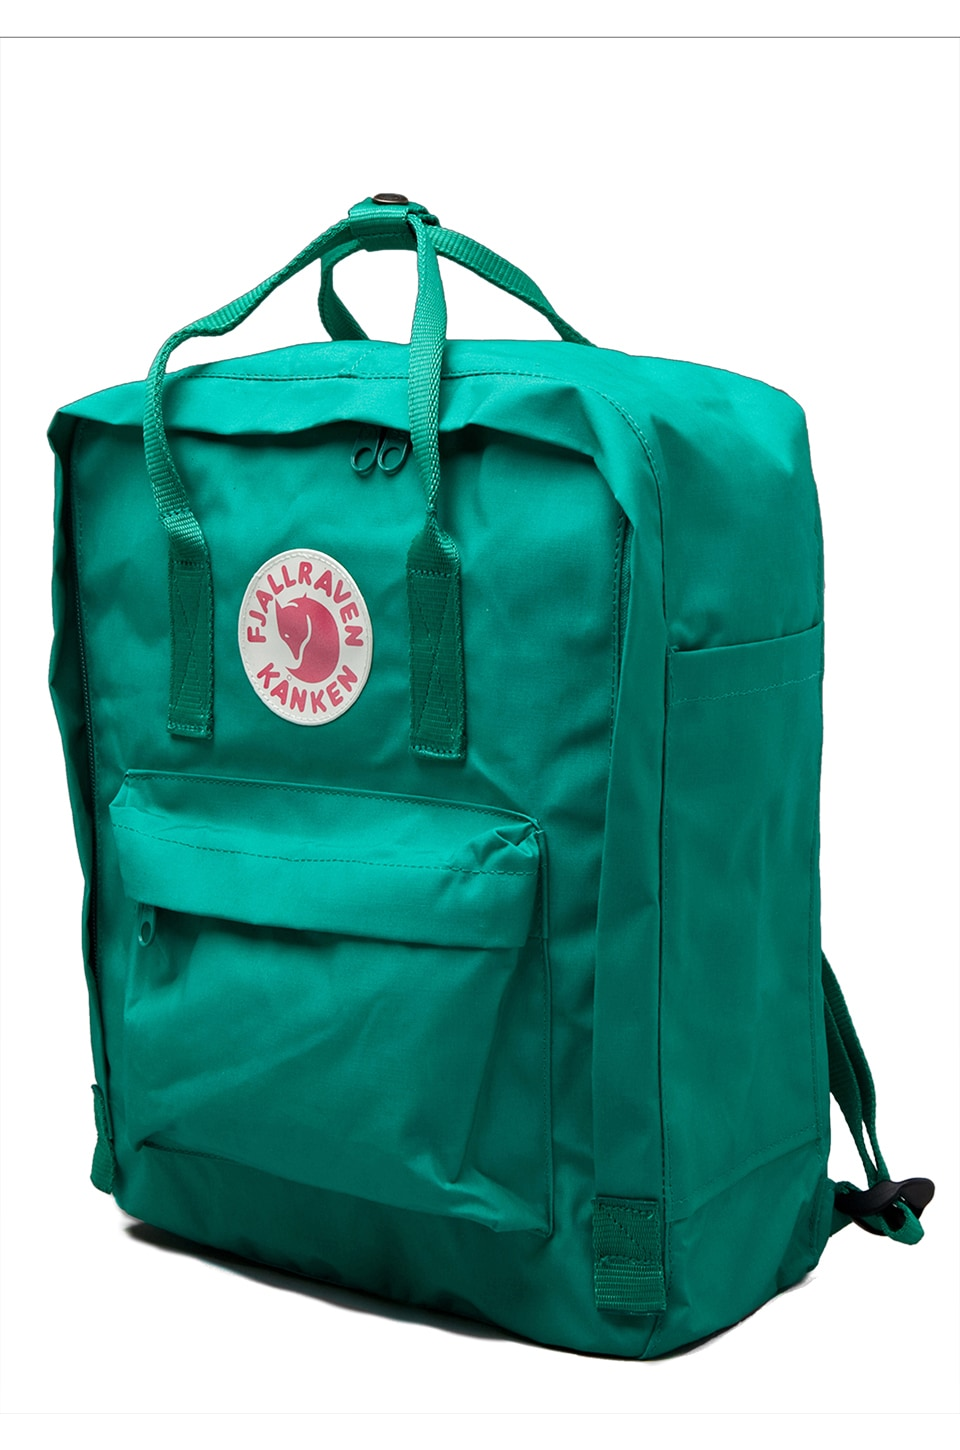 Fjallraven Kanken in Teal